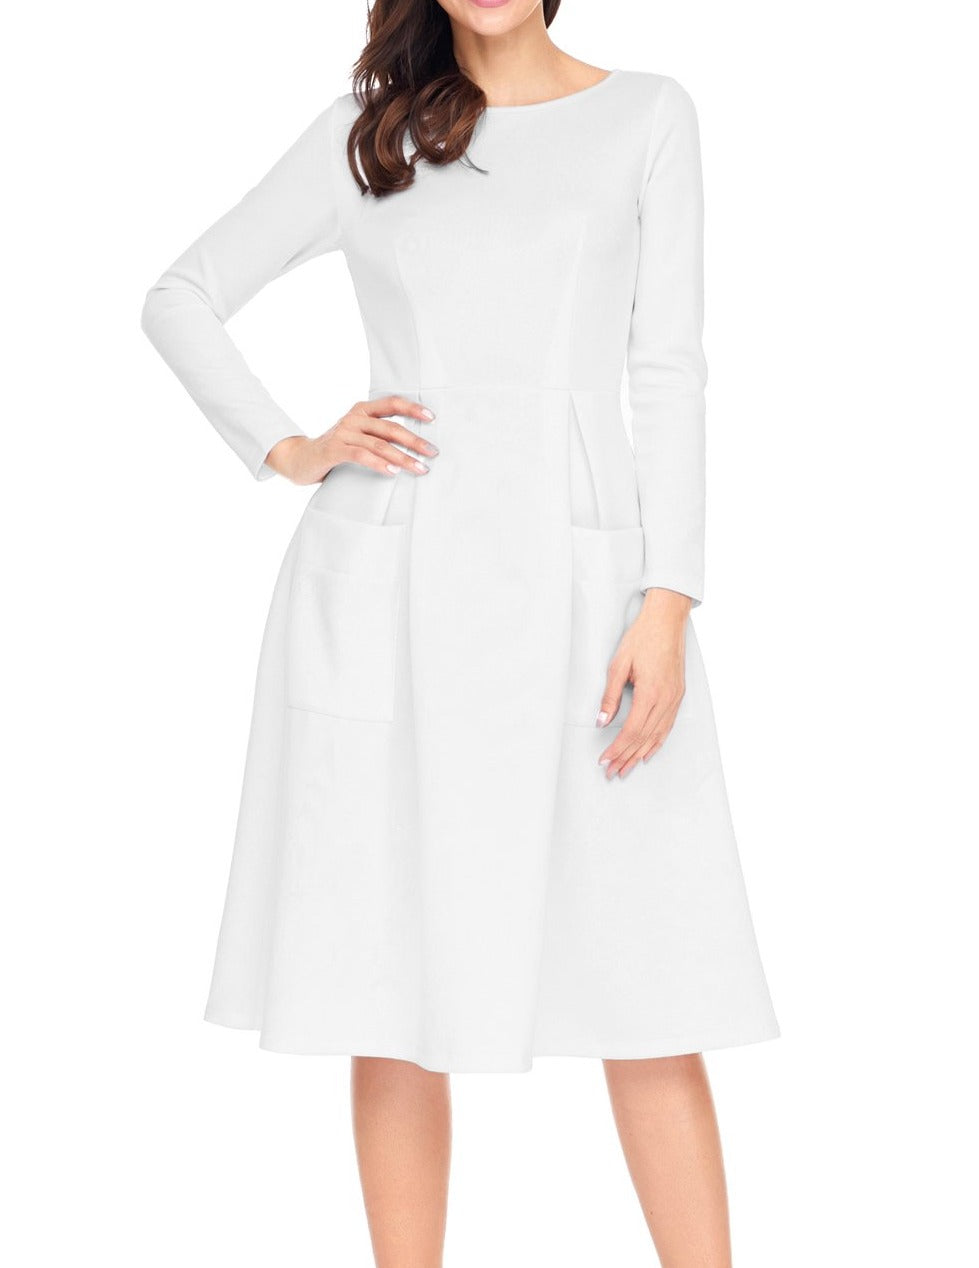 White Bateau Collar Casual Big Pocket Skater Dress